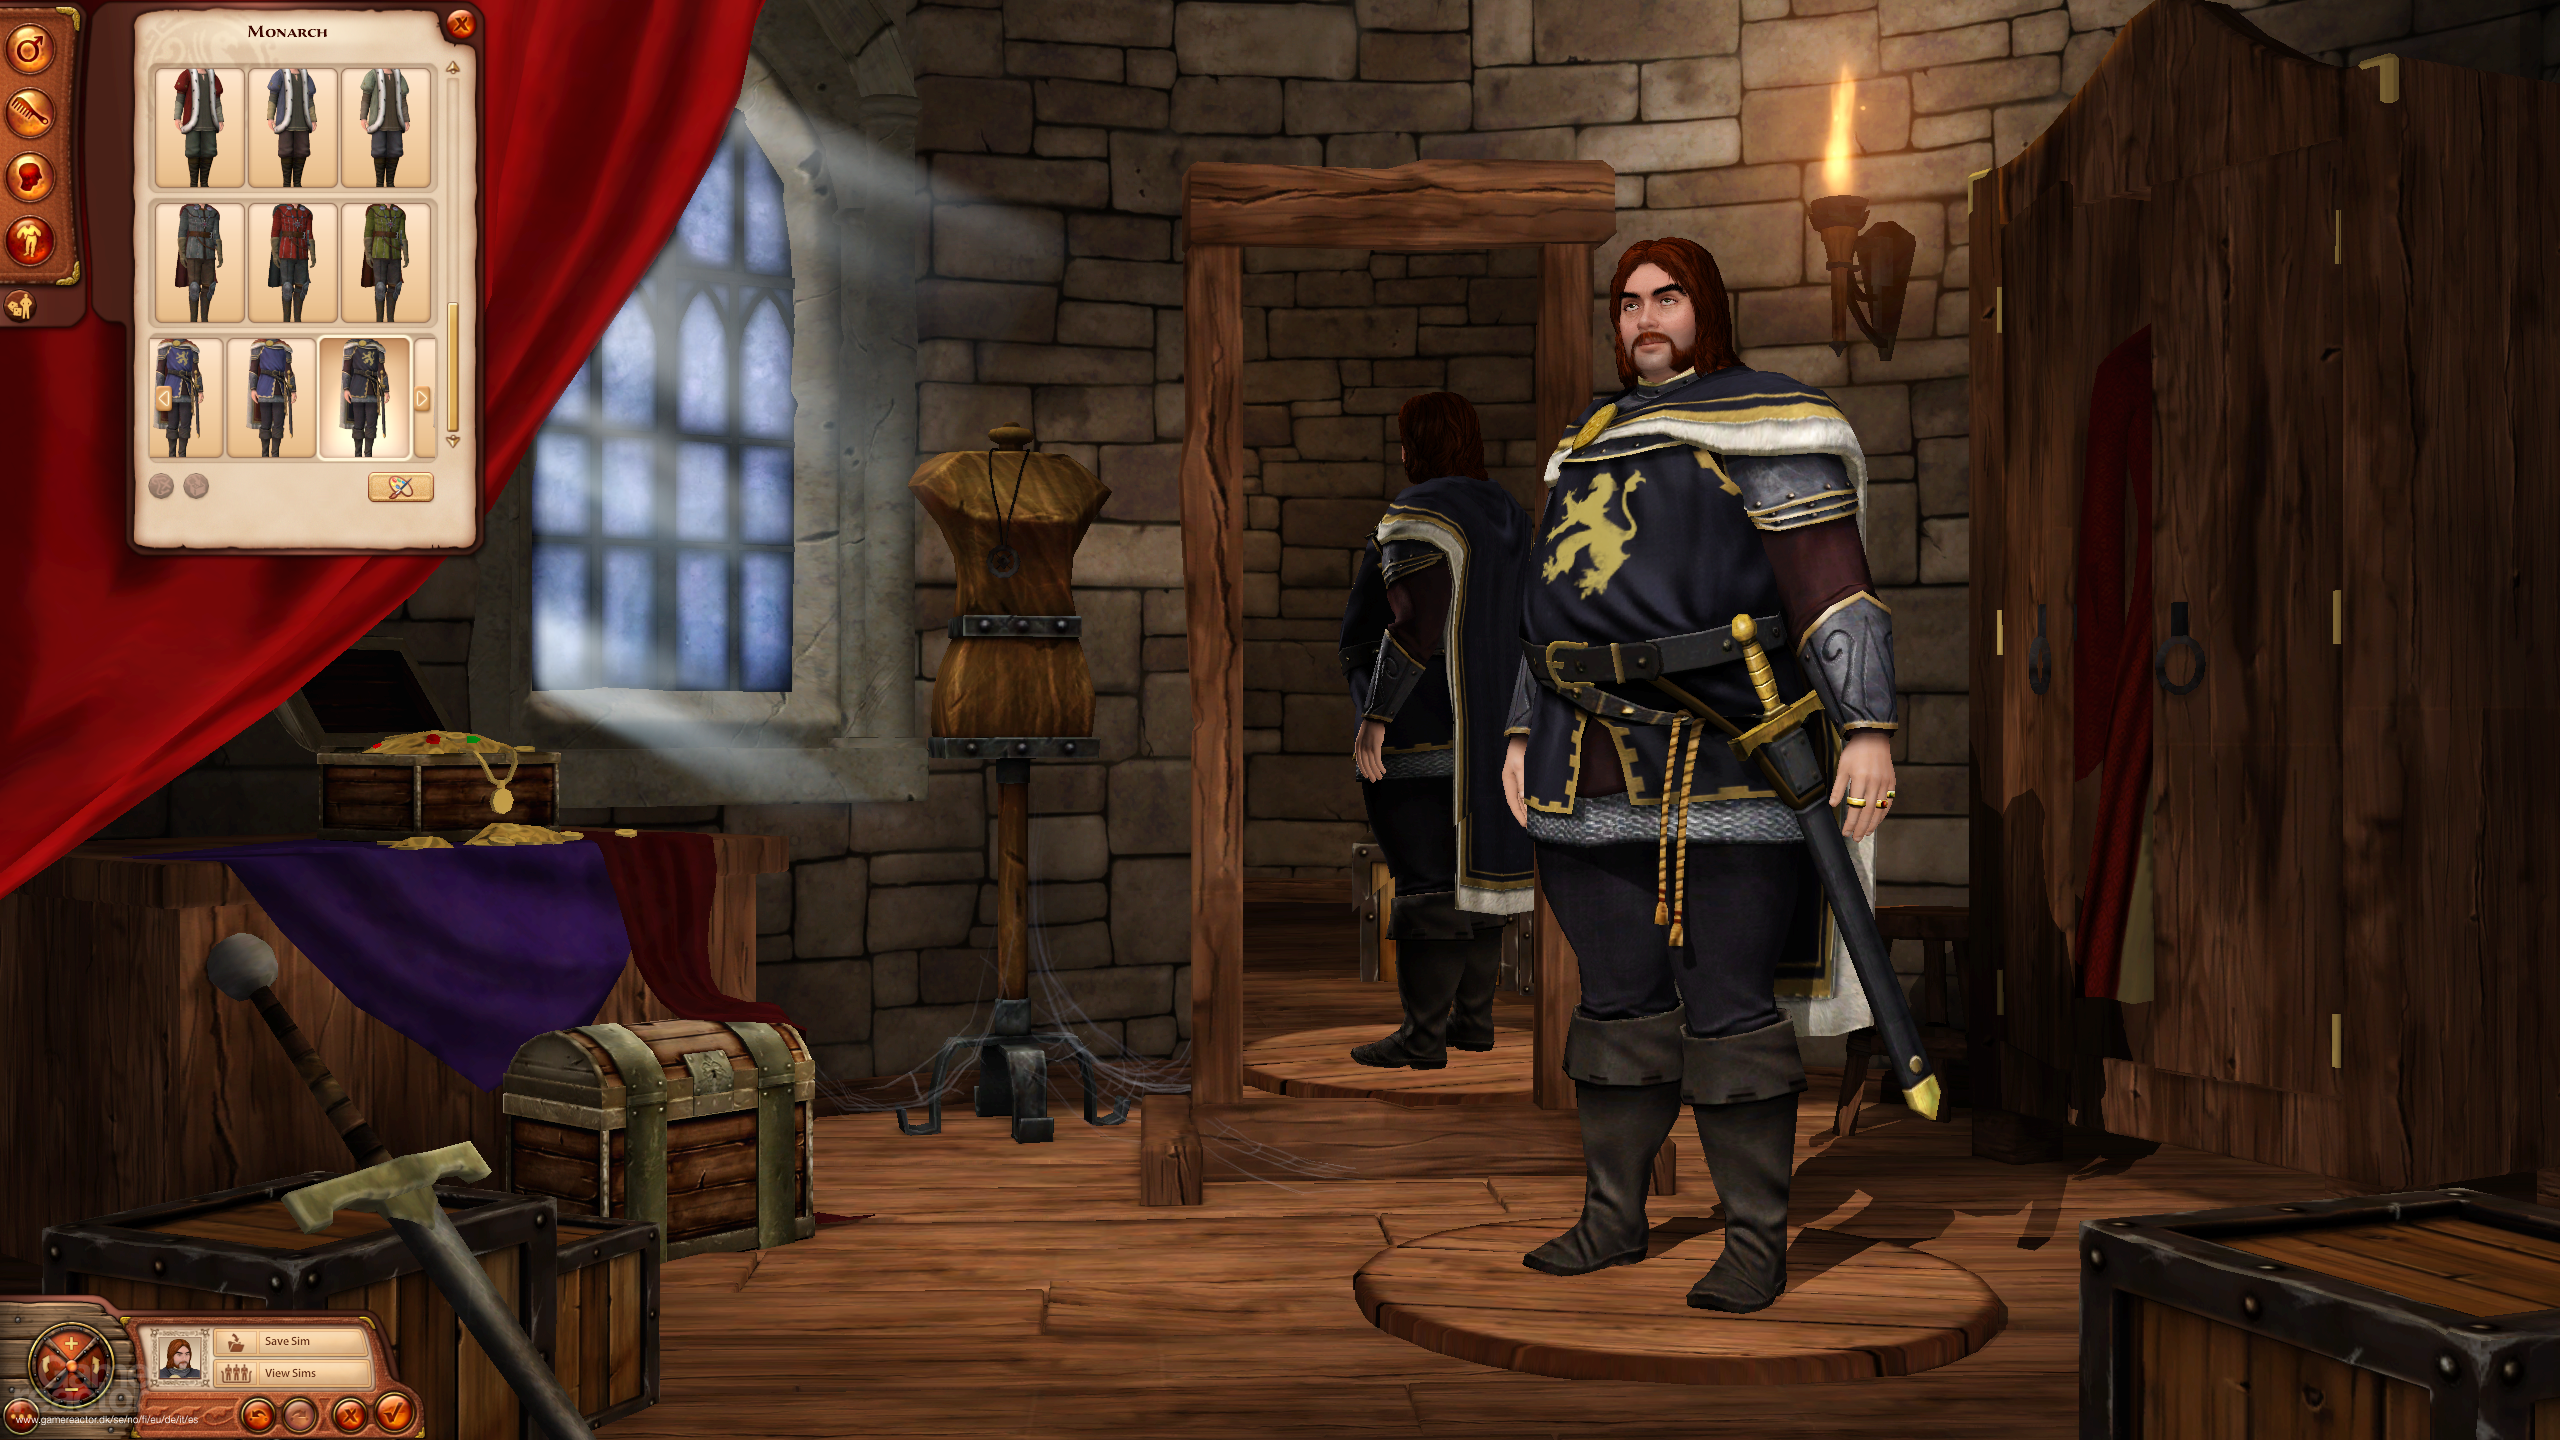 Sims medieval ios download